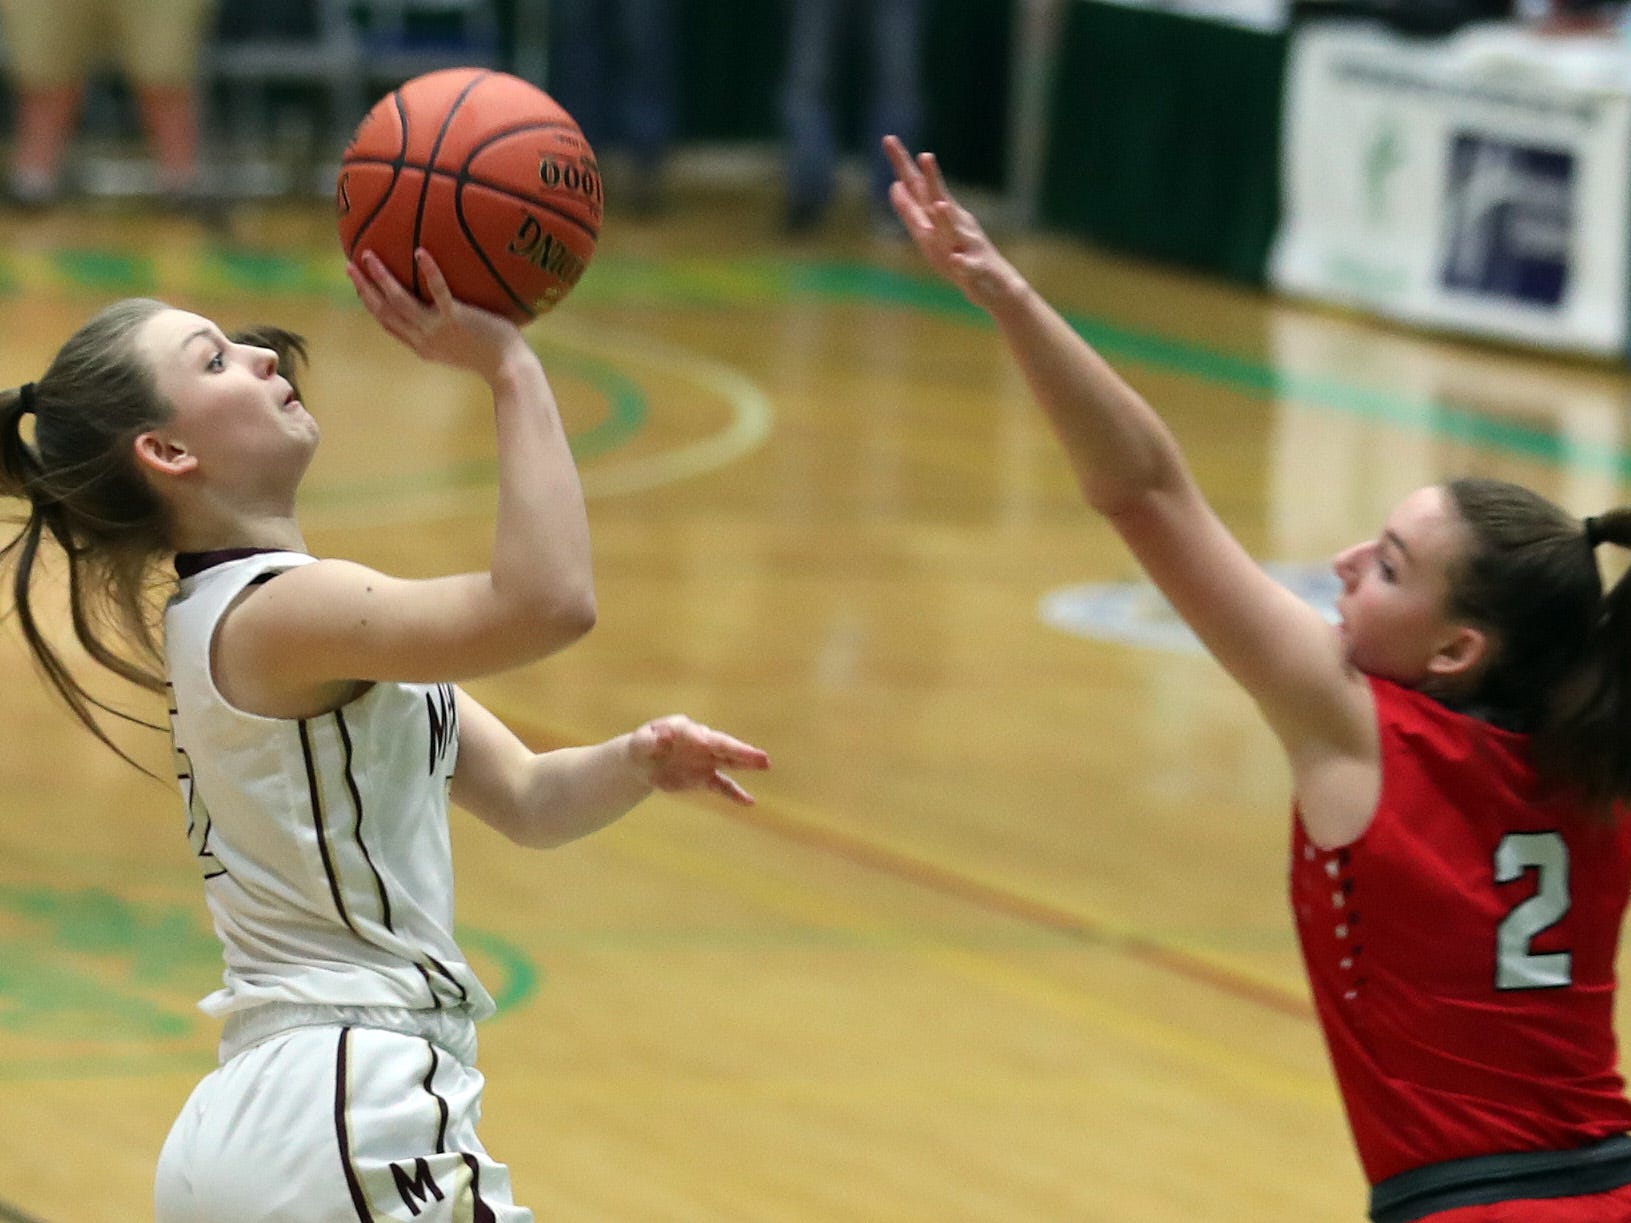 Mendon's Courtney Naugle (5) puts up a shot in front of Jamesville-DeWitt's Sydney Baker (2) during the girls Class A state semifinal at Hudson Valley Community College in Troy March 16, 2019.